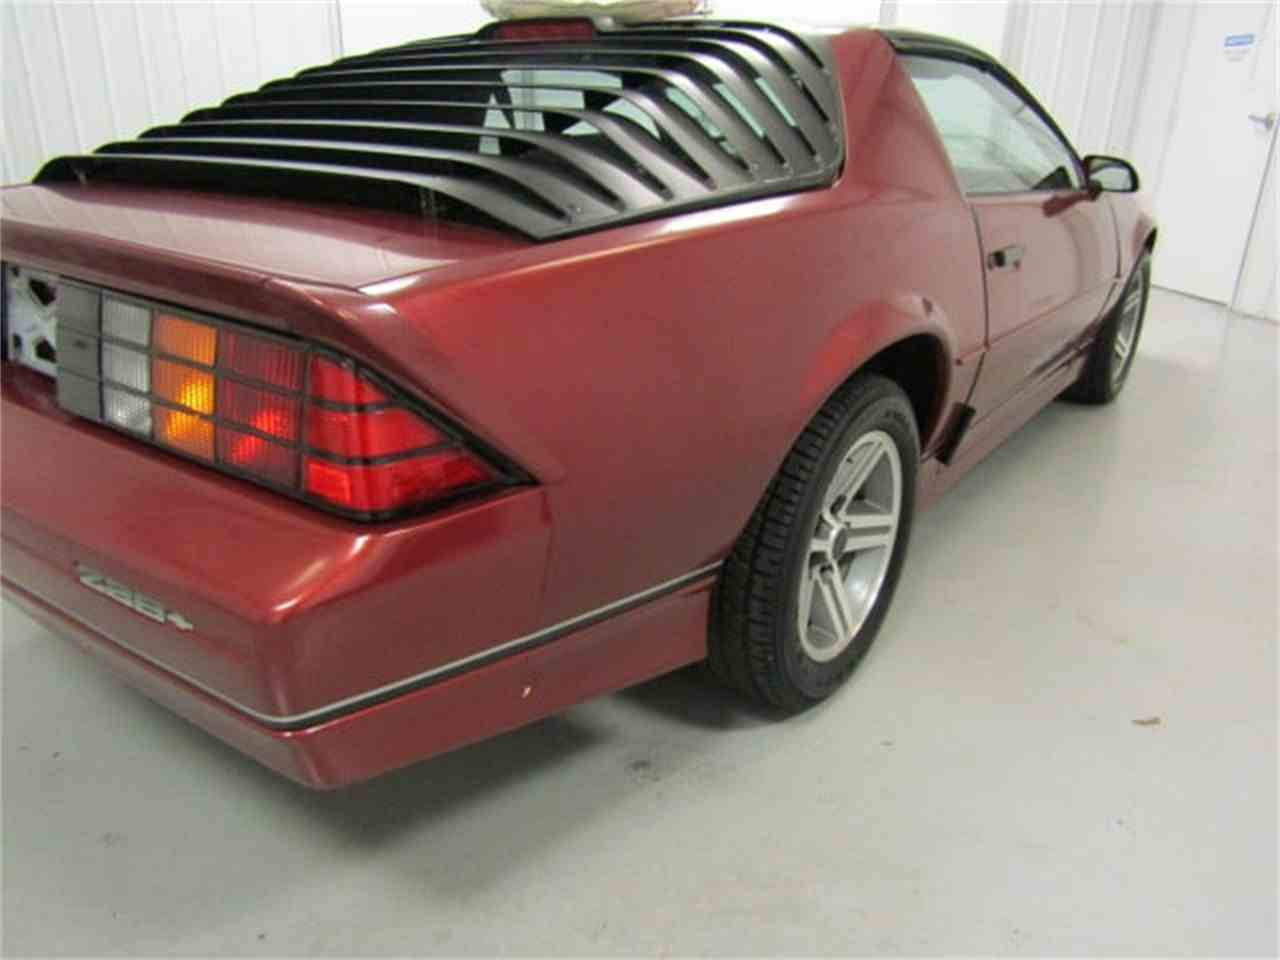 Large Picture of 1986 Chevrolet Camaro - $24,900.00 Offered by Duncan Imports & Classic Cars - JLAE